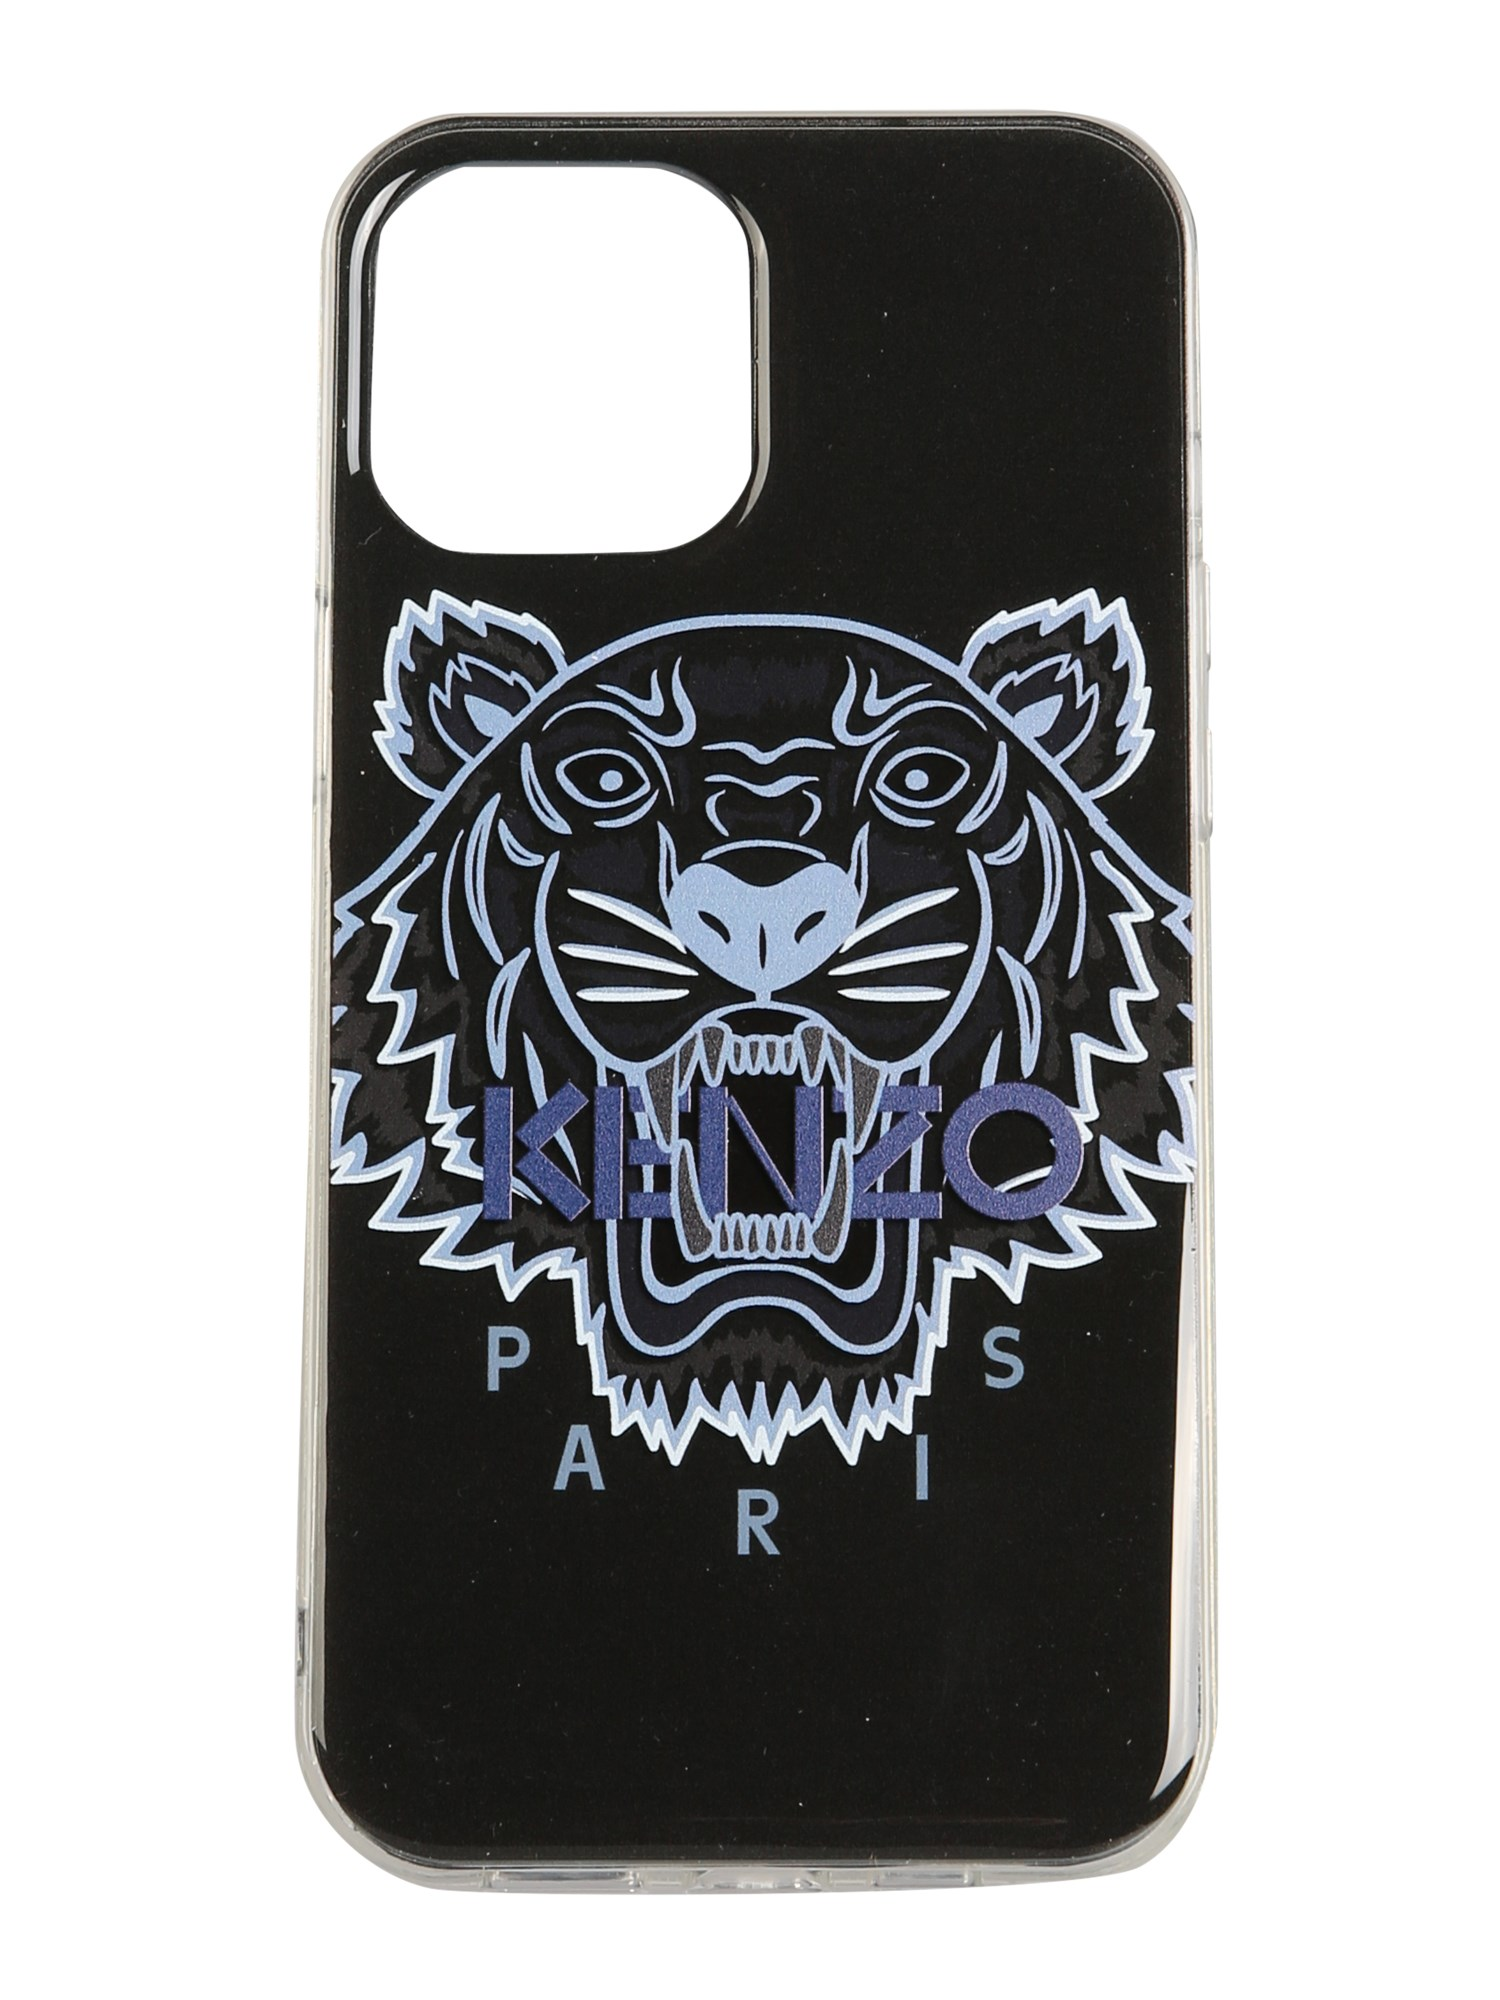 kenzo iphone 12 pro max cover